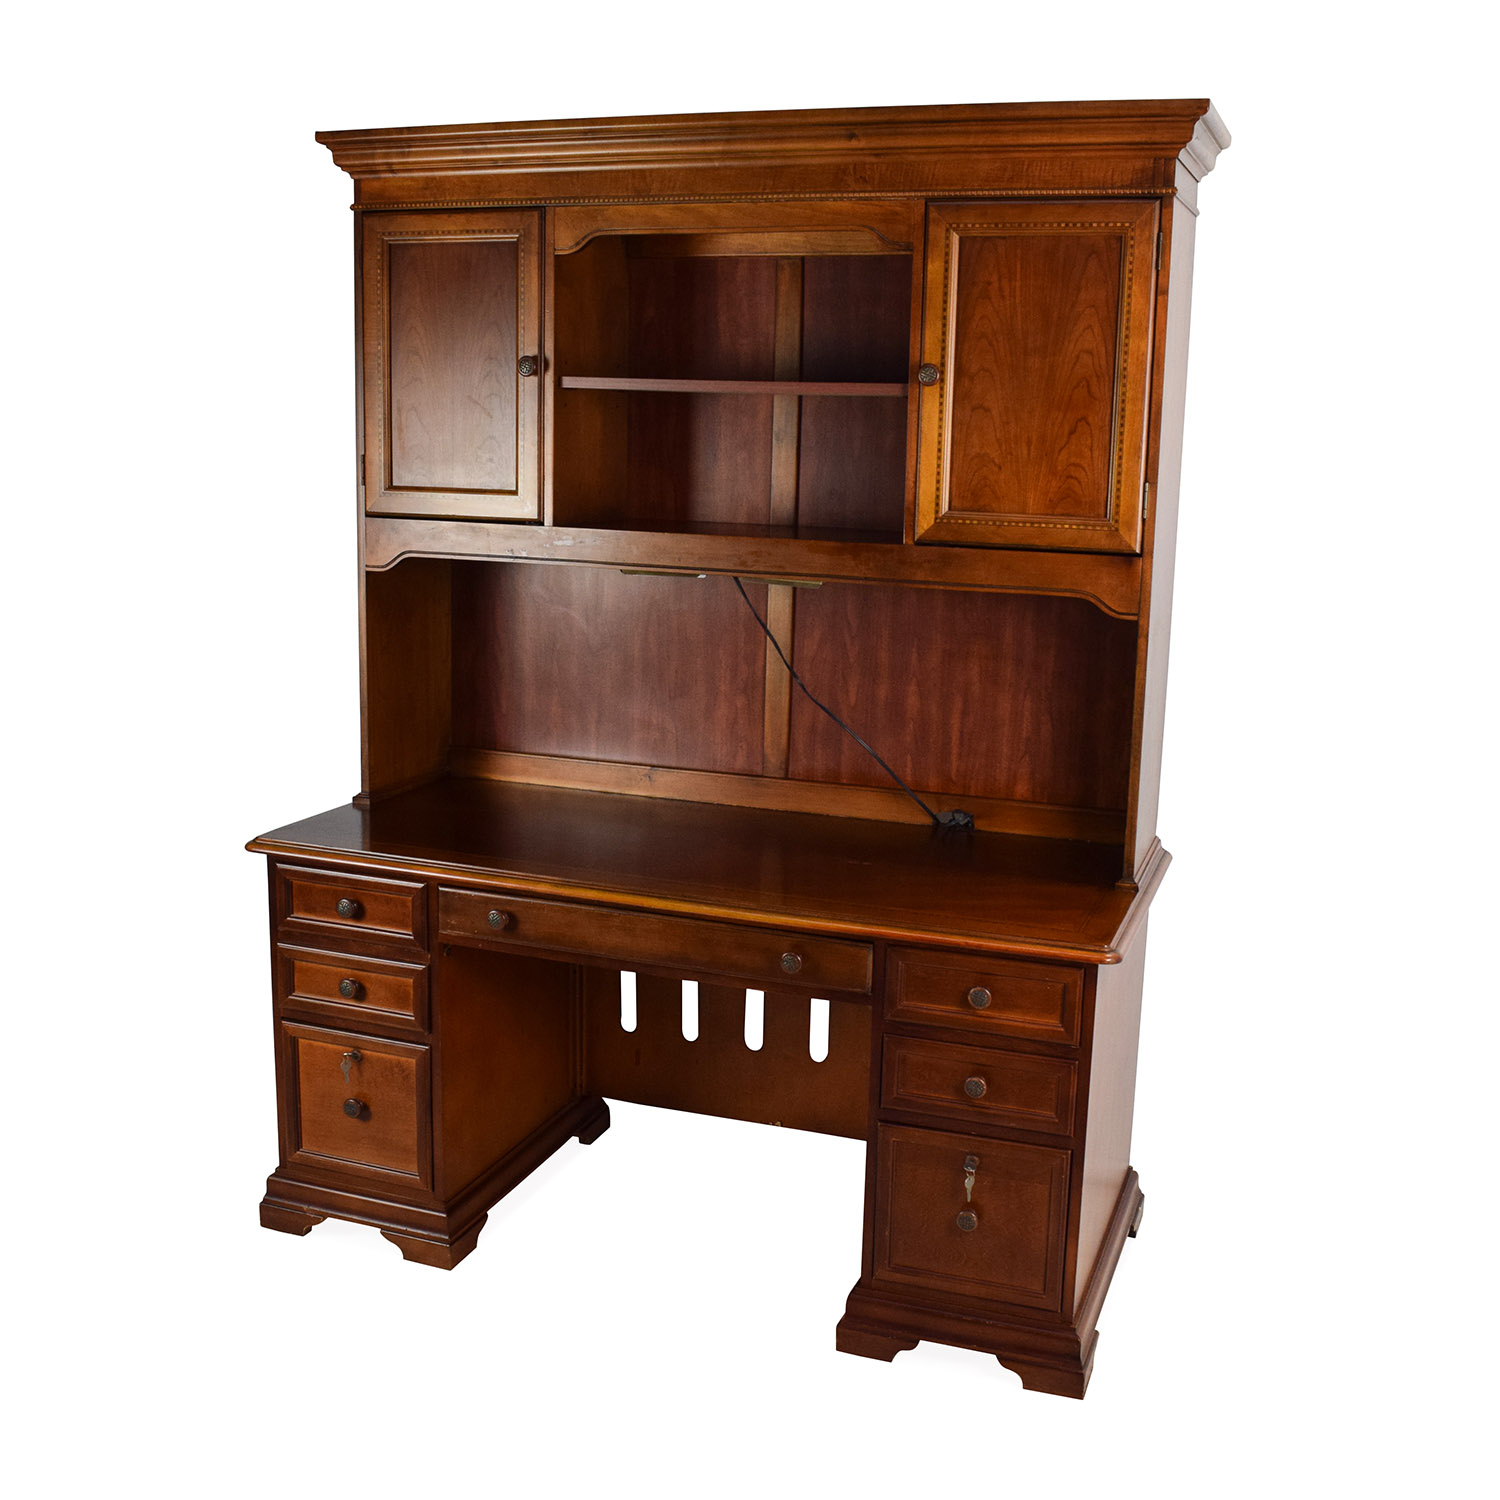 79 Off Hammary Furniture Hammary Furniture Wooden Desk